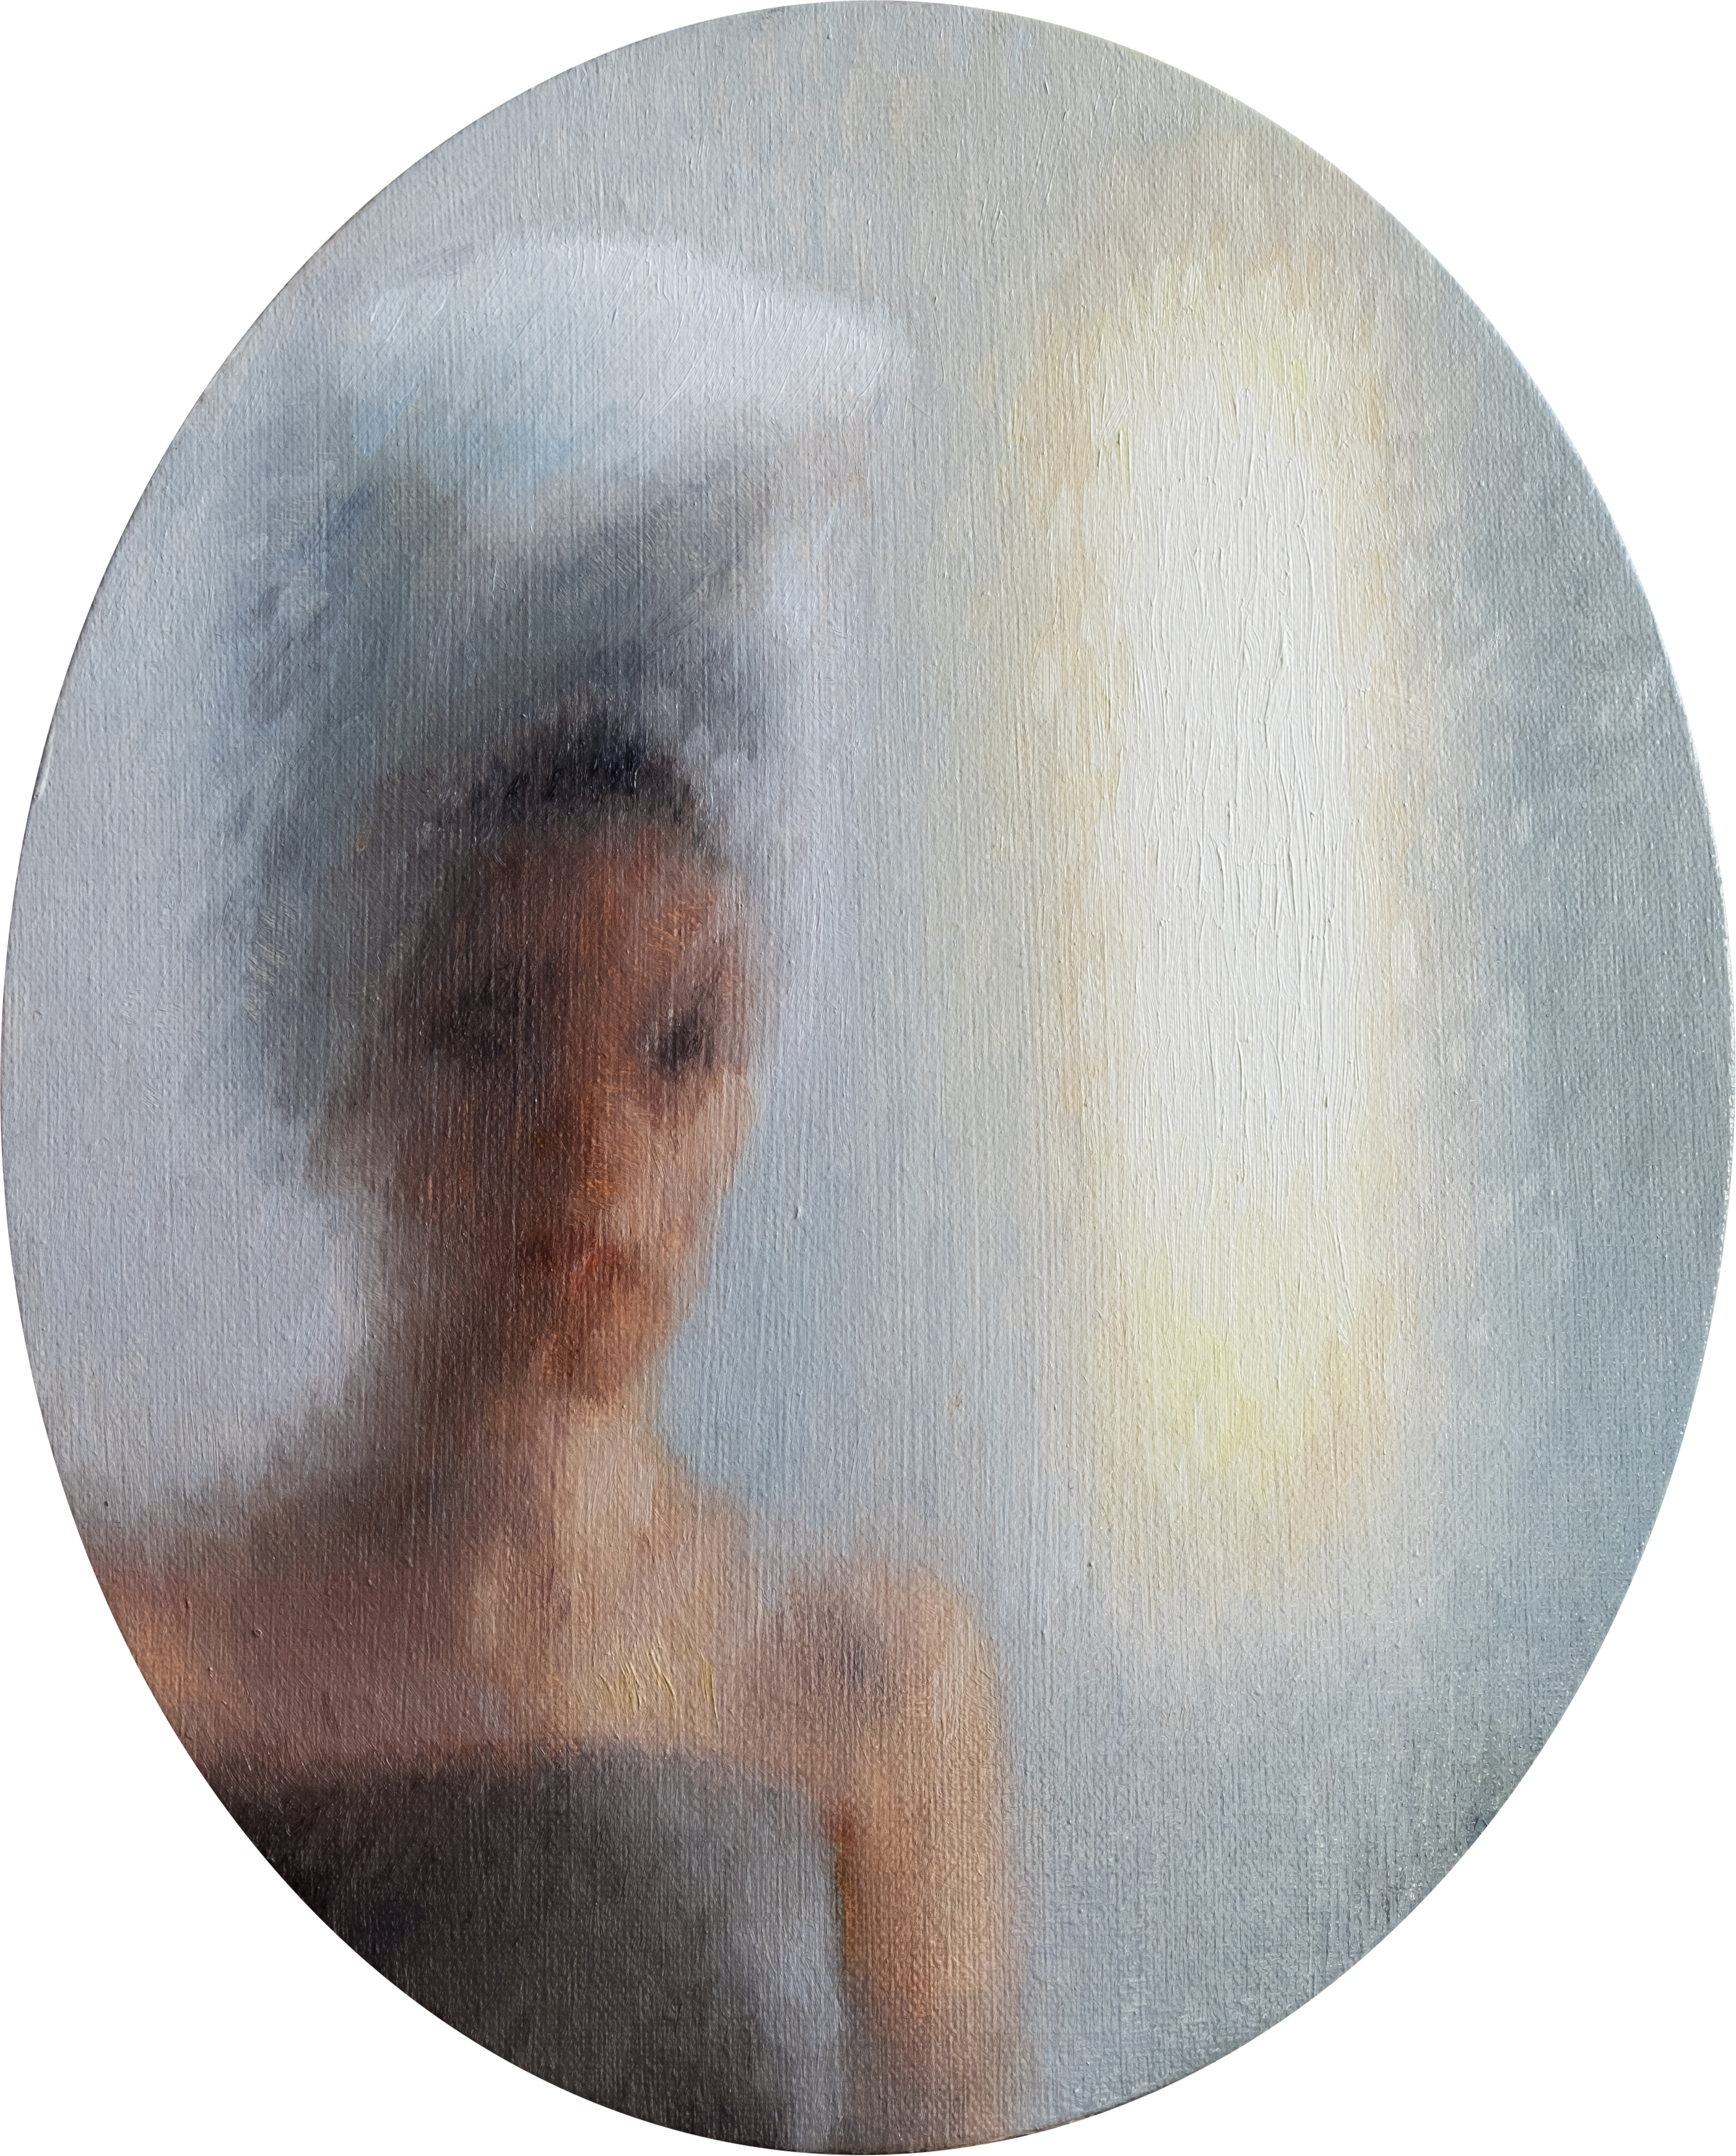 Anna Calleja, Reflection in Mirror, oil on canvas, 20x25cm, 2020